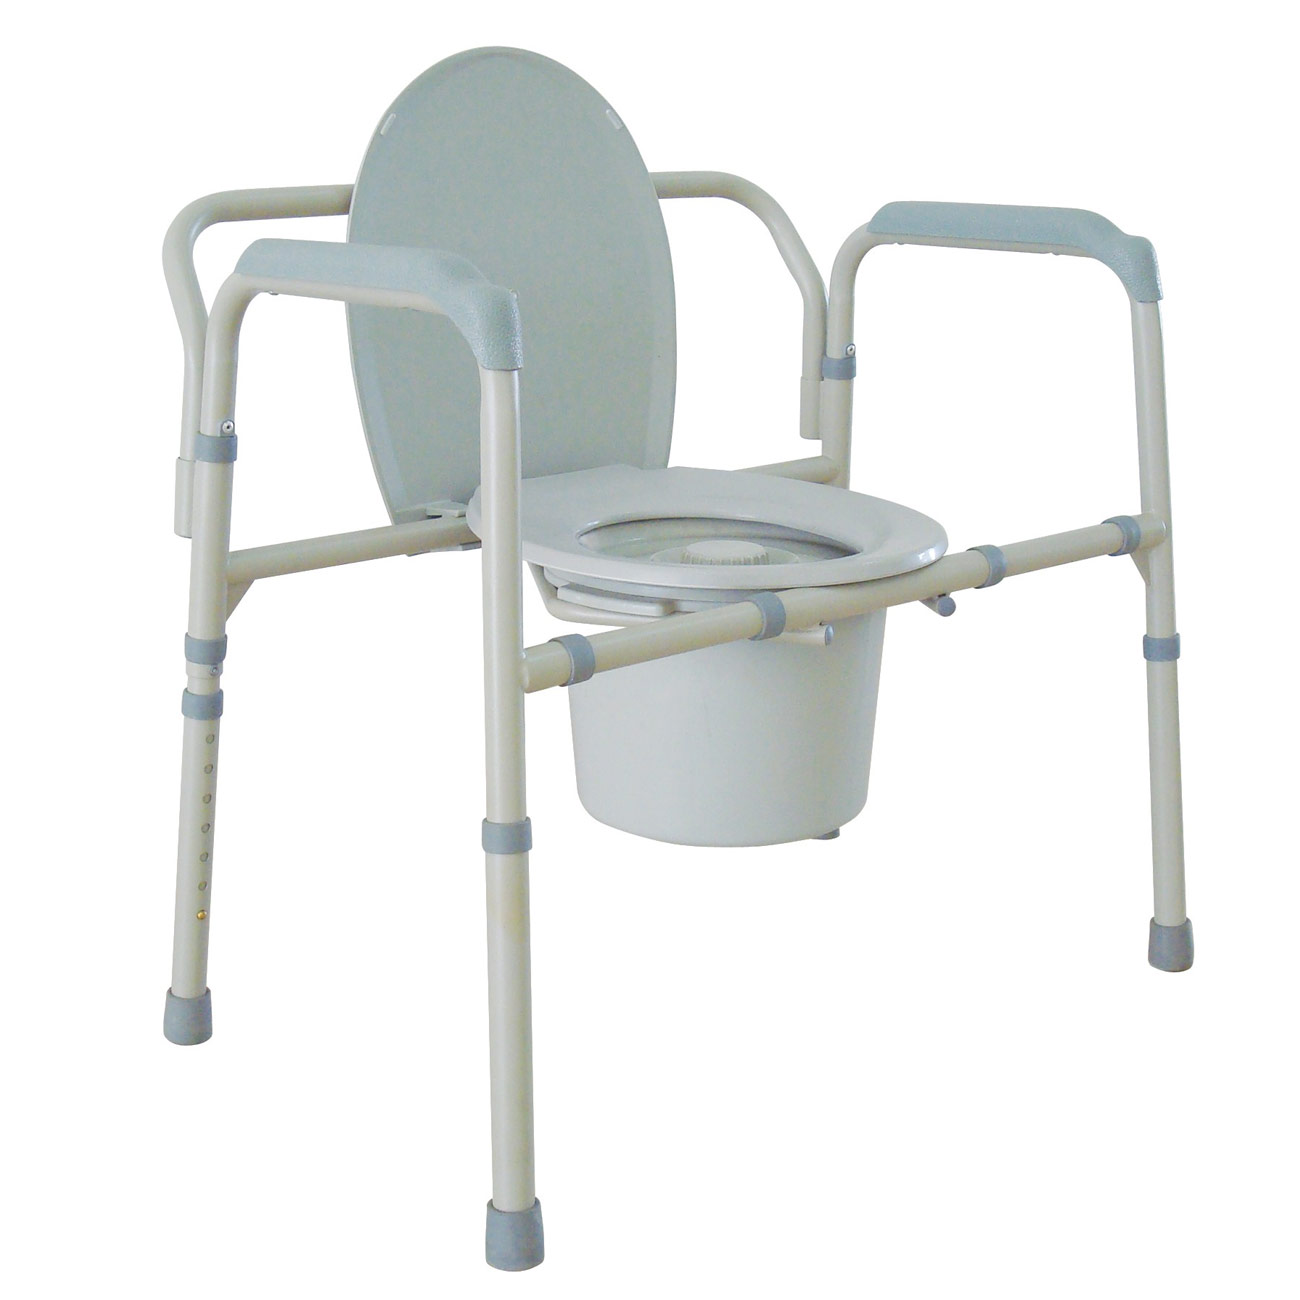 Extra Wide All-in-one Steel Commode